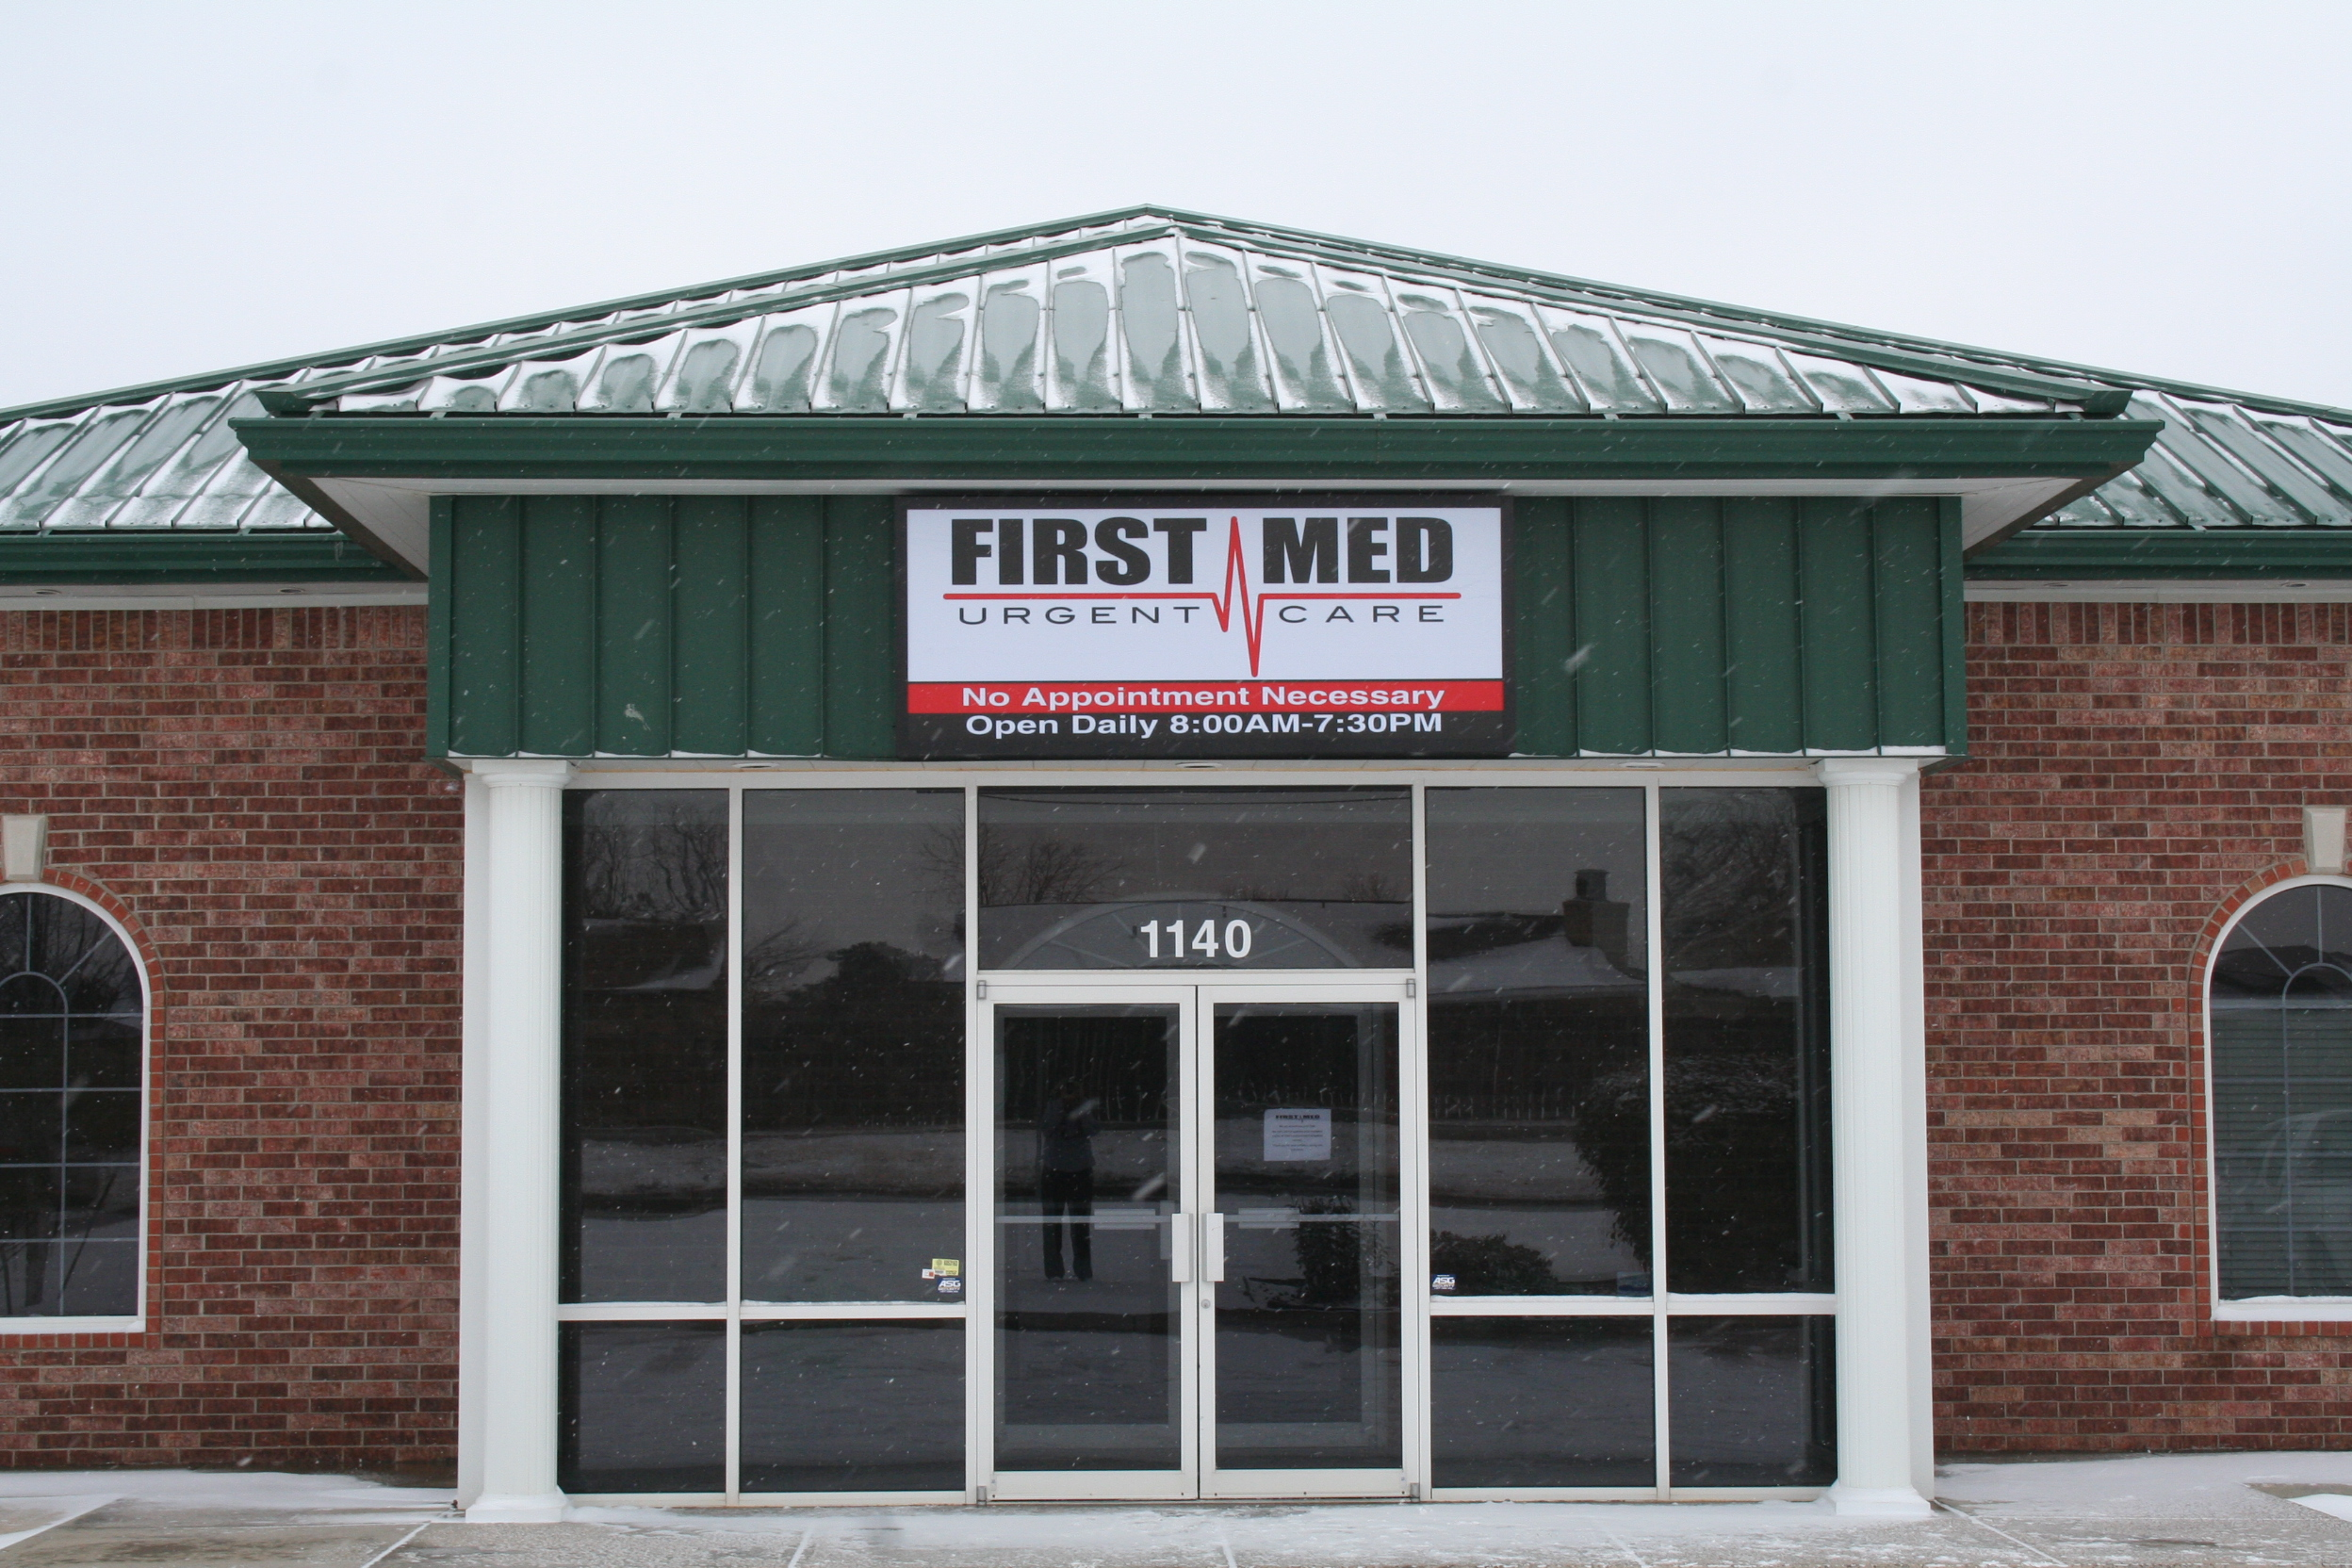 First Med Urgent Care 1140 Sw 104th St Oklahoma City Ok